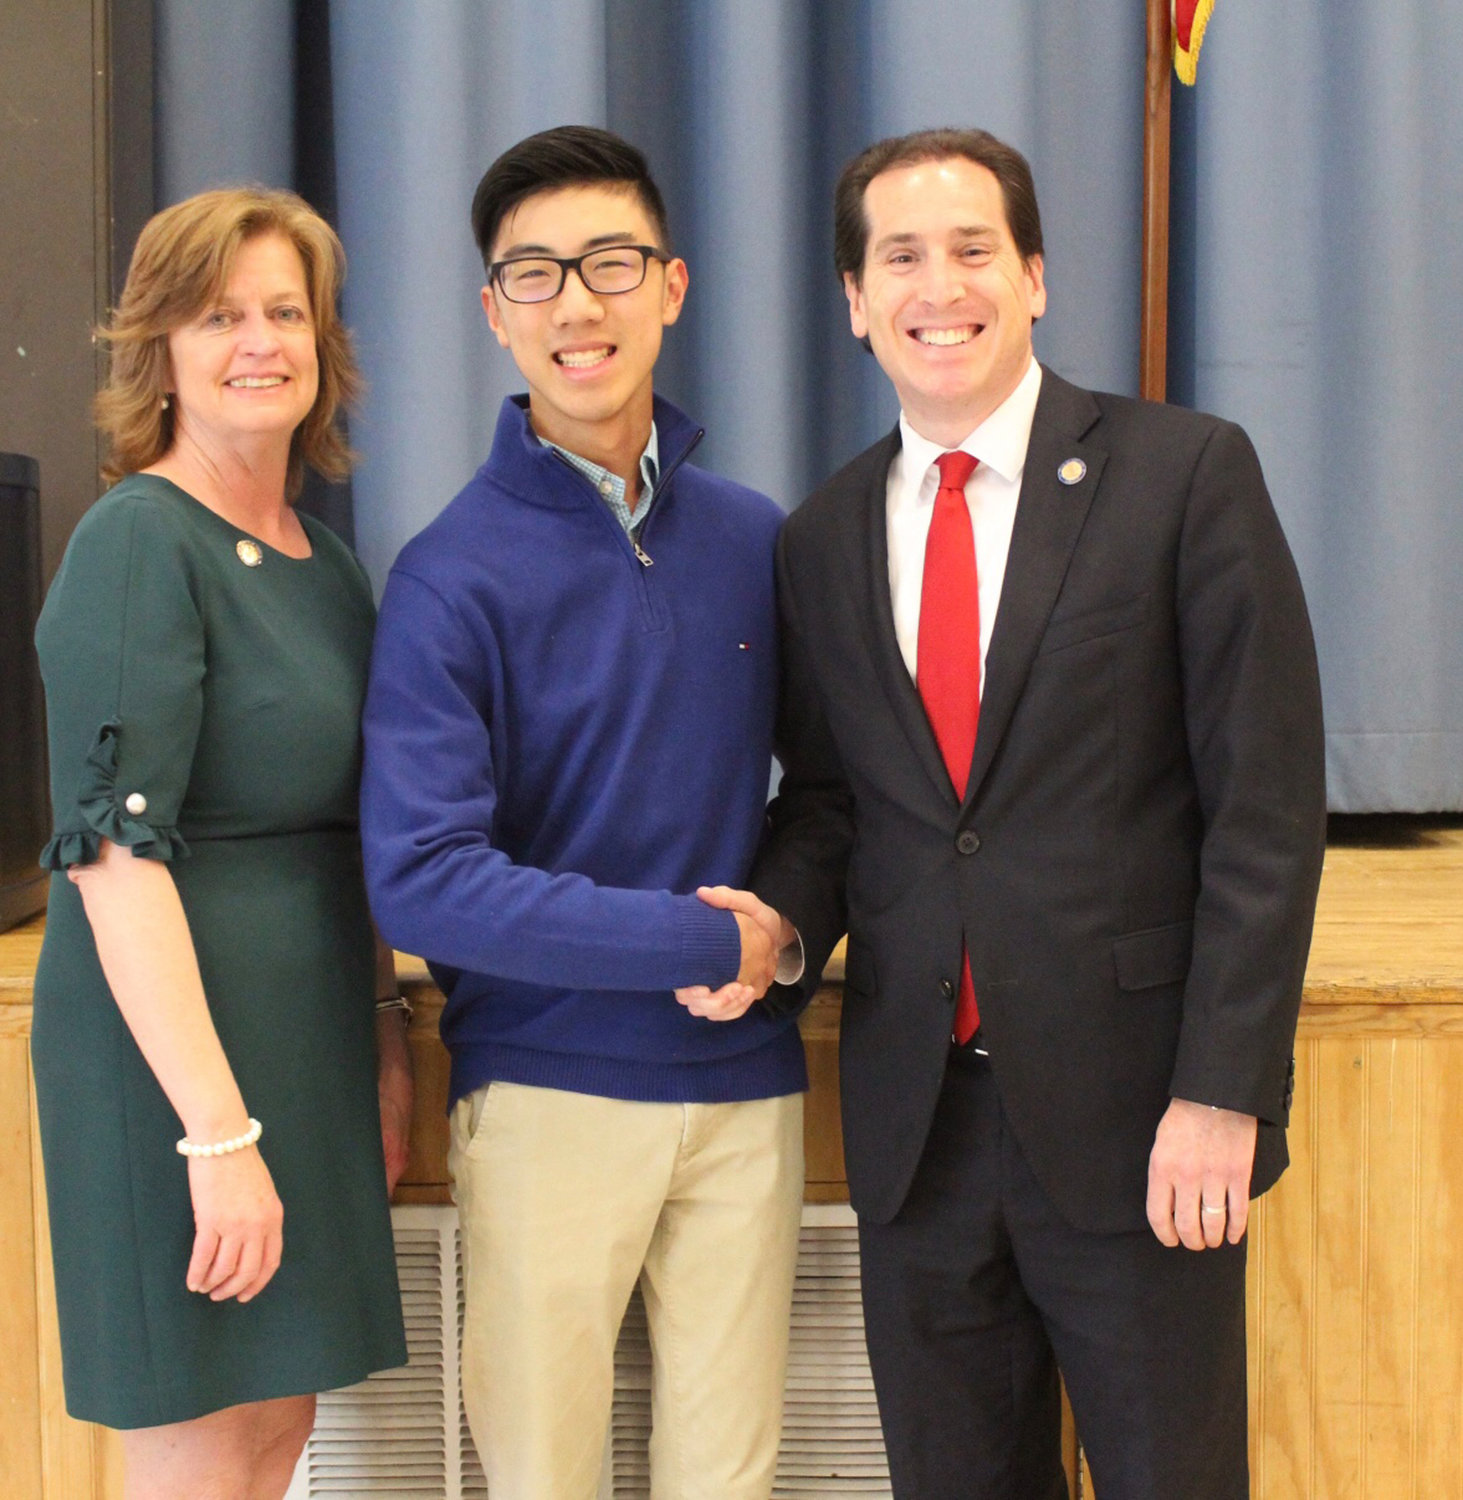 Malverne High School valedictorian Nelson Chow, center, was recognized by State Assemblywoman Judy Griffin and State Sen. Todd Kaminsky for being named as a 2019 U.S. Presidential Scholar.